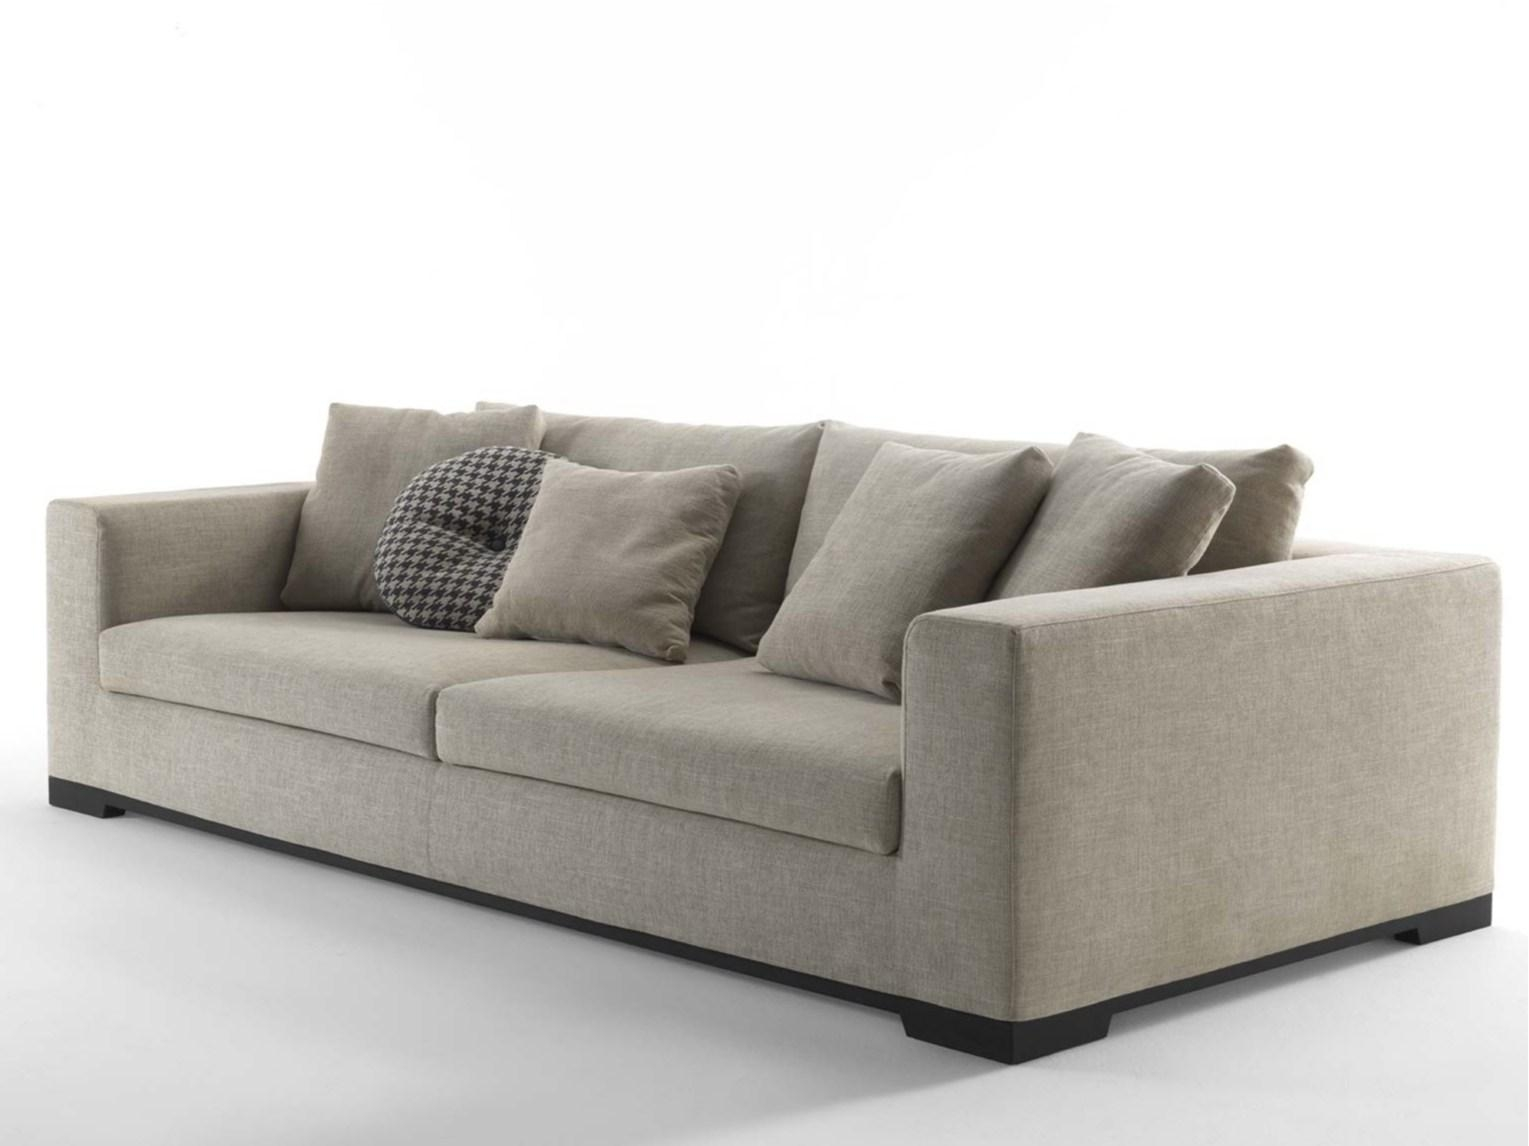 Orazio | Sectional Sofafrigerio Salotti With Regard To Sofa With Removable Cover (View 16 of 20)